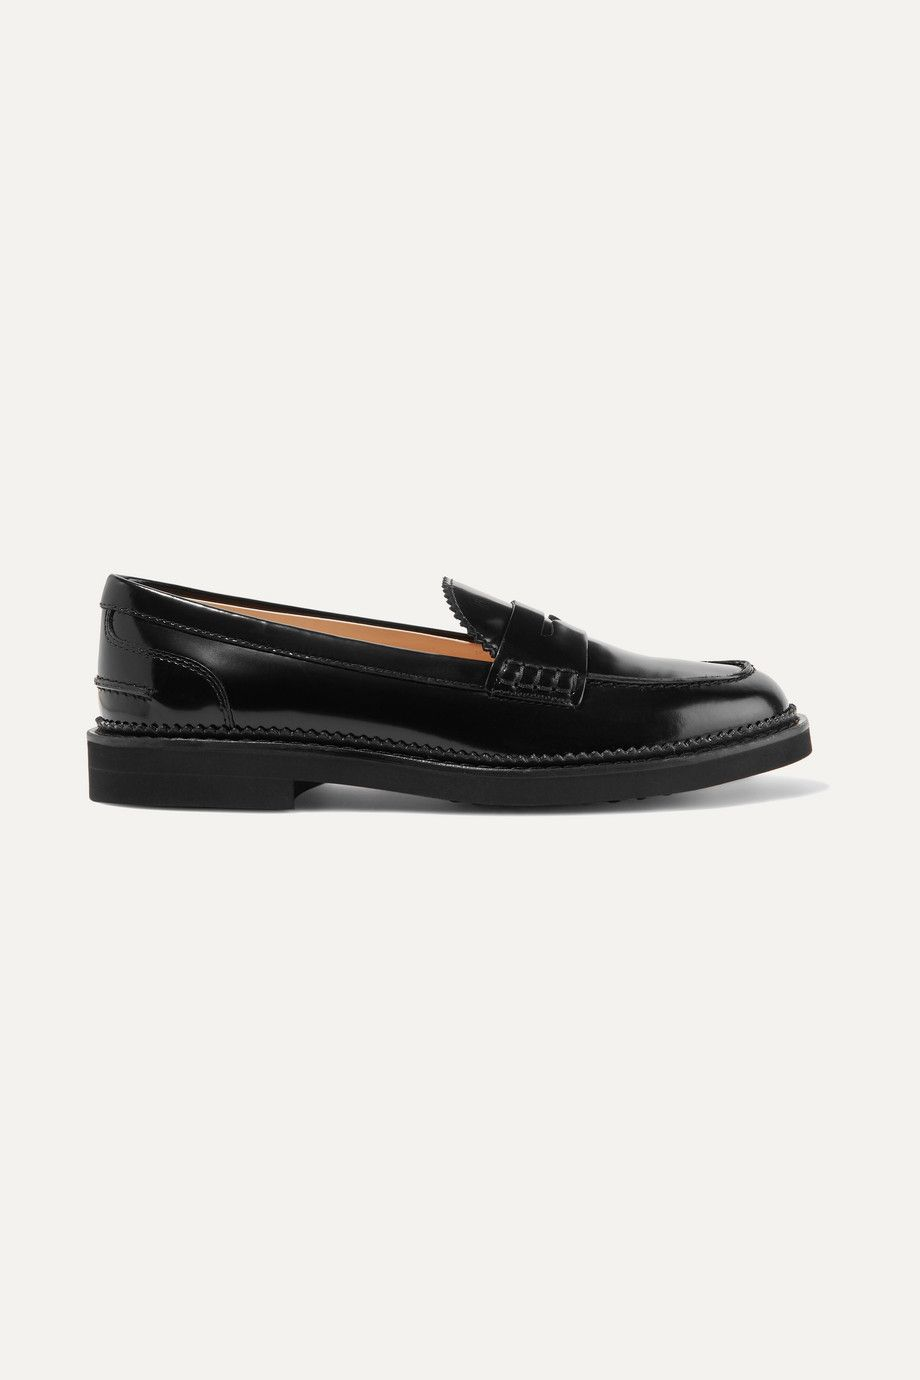 tods-patent-leather-loafers